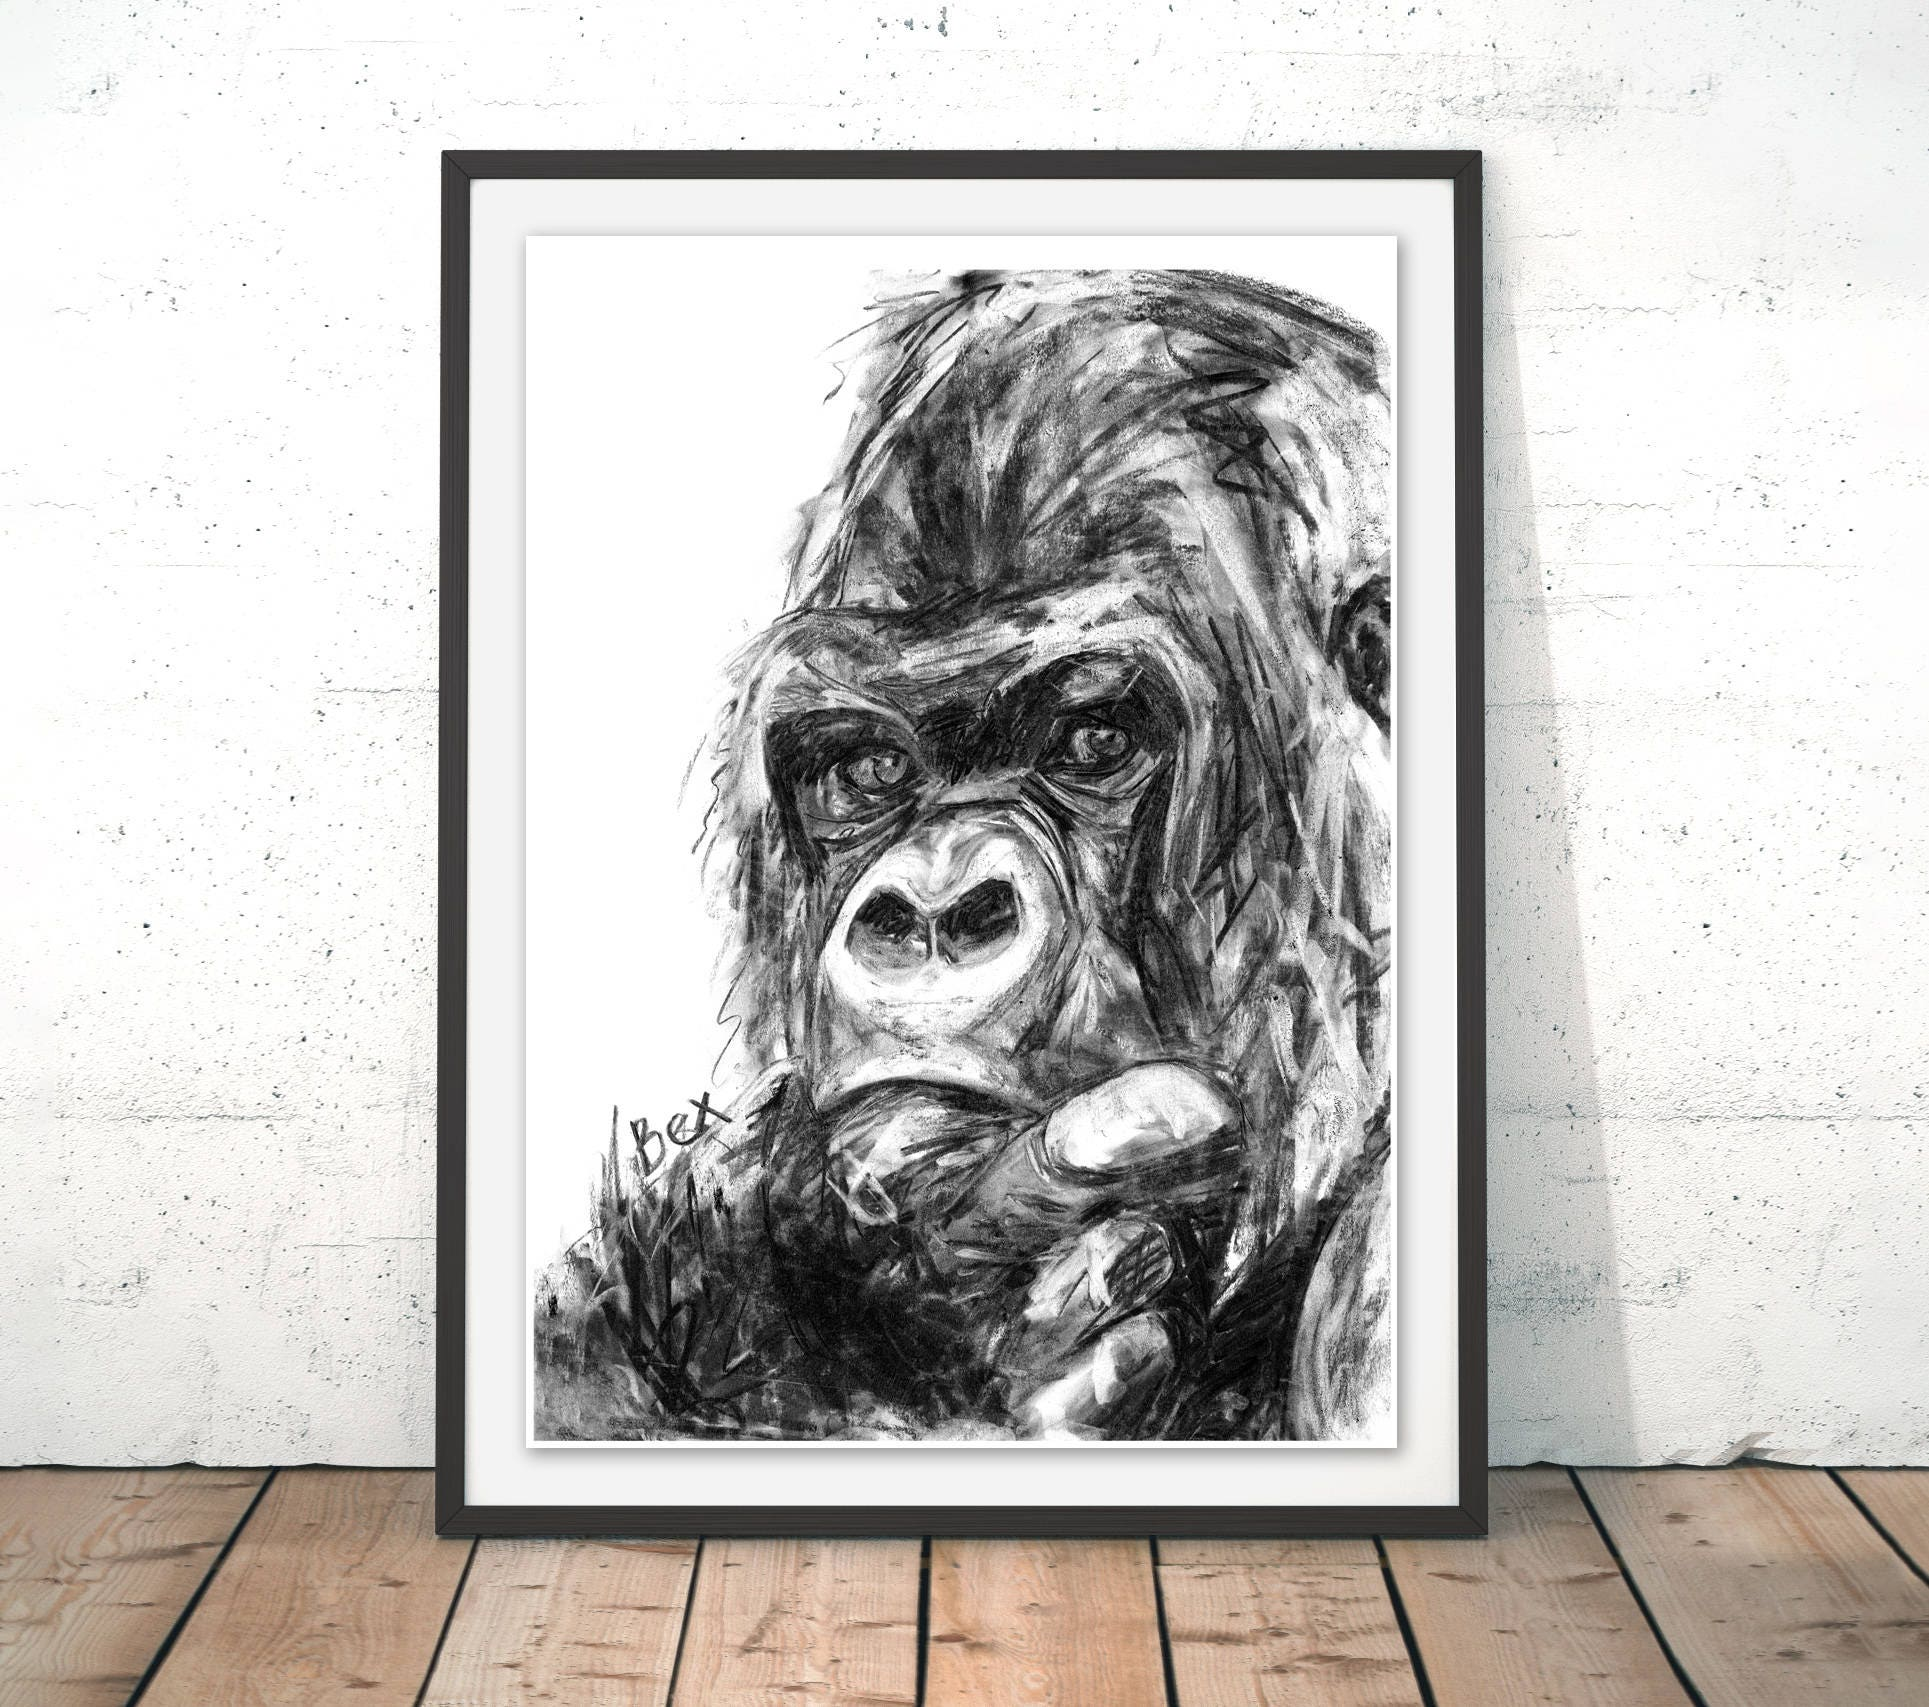 gorilla art print gorilla wall art ape charcoal illustration